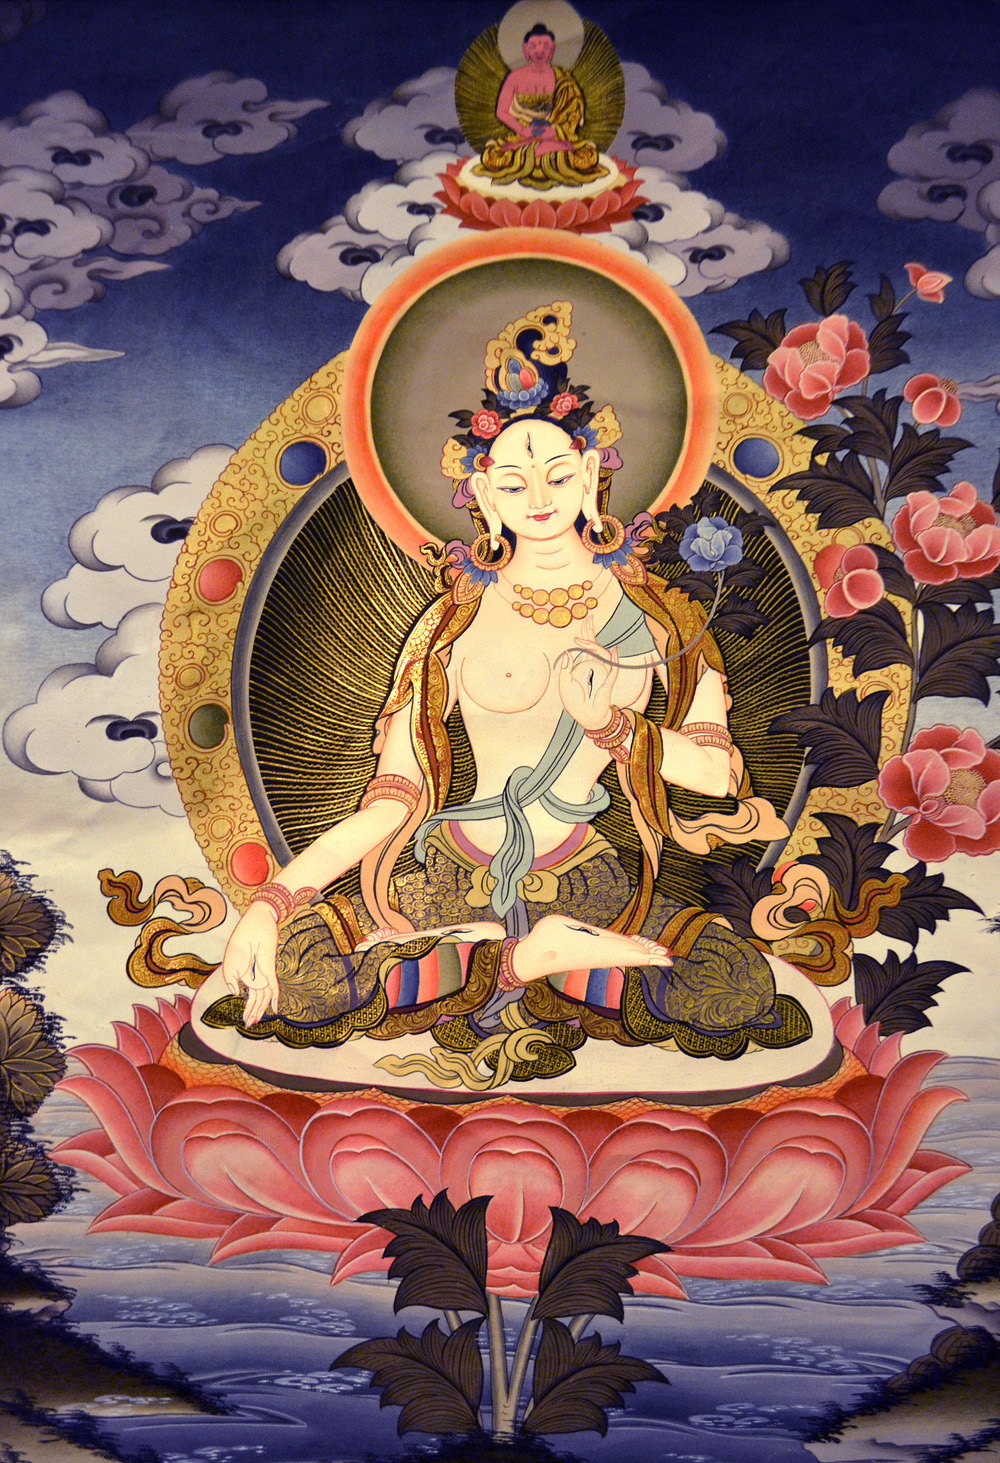 White Tara is the main female Bodhisattva, traditionally associated with the lotus. White Tara in Vegetka is displayed in the lotus position with seven eyes (the eyes, forehead, hands and feet), symbolizing the vision of all the earth, and the ability to help all feeling beings. Photo: Barbora Sajmovicova, 2016, Prague.